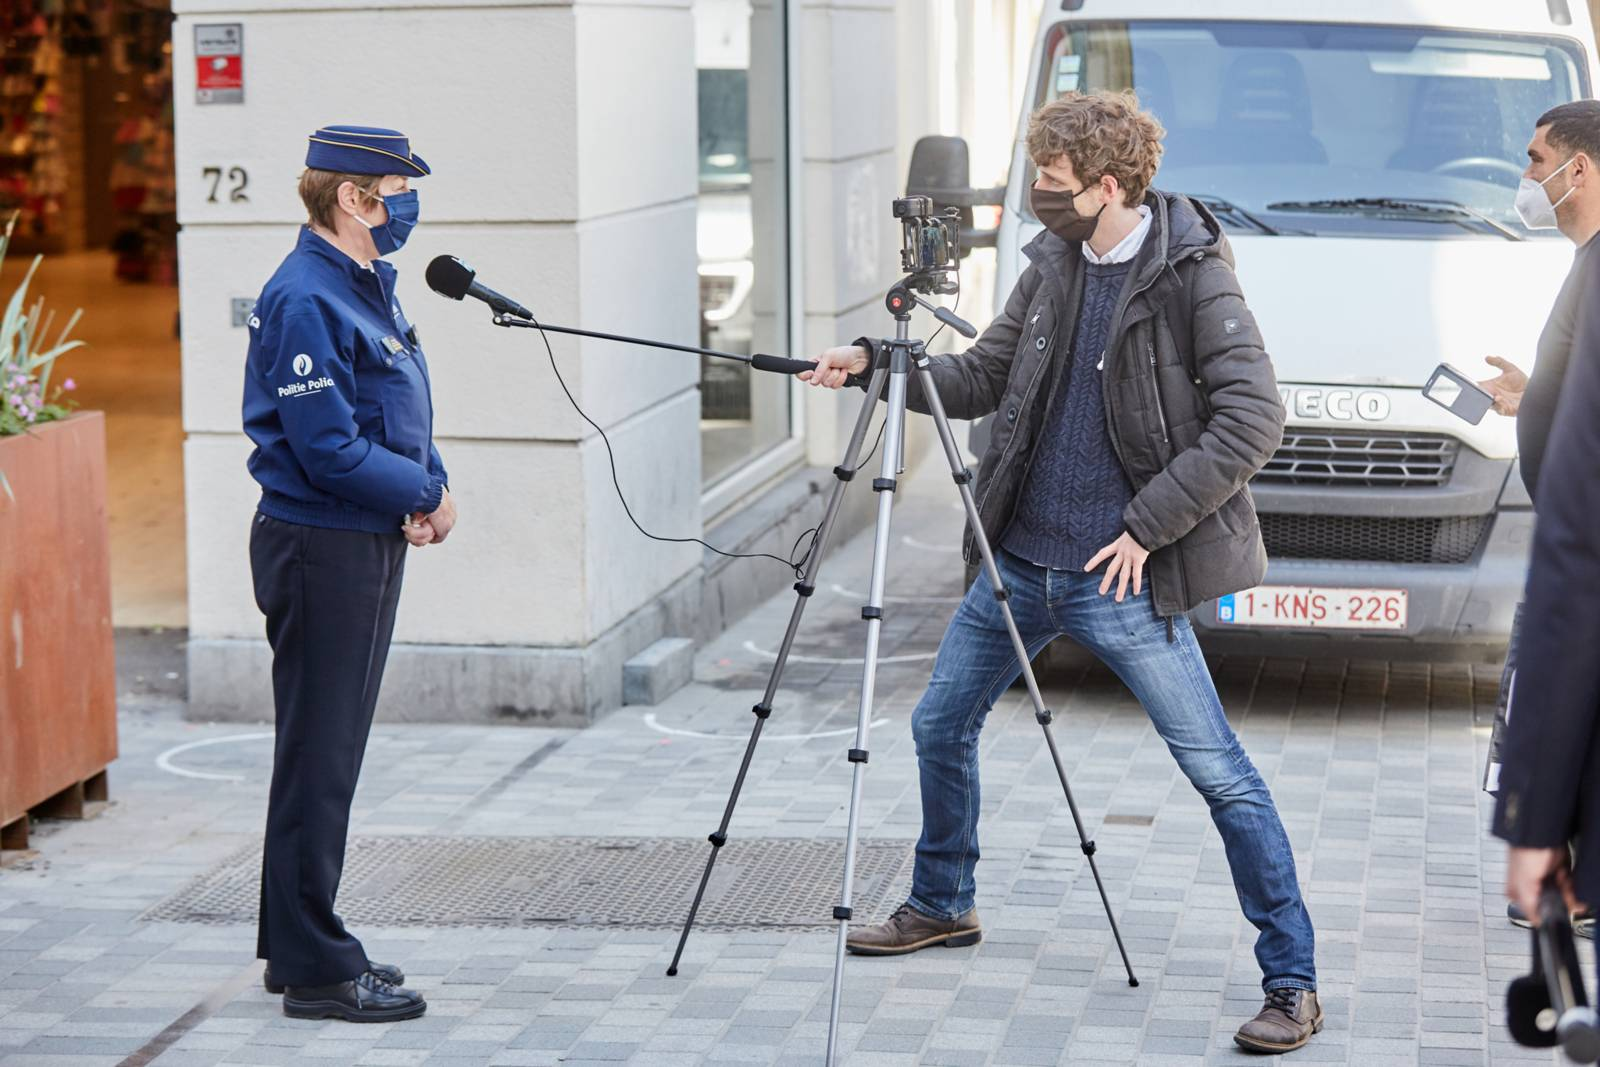 A police officer being interviewed by a journalist